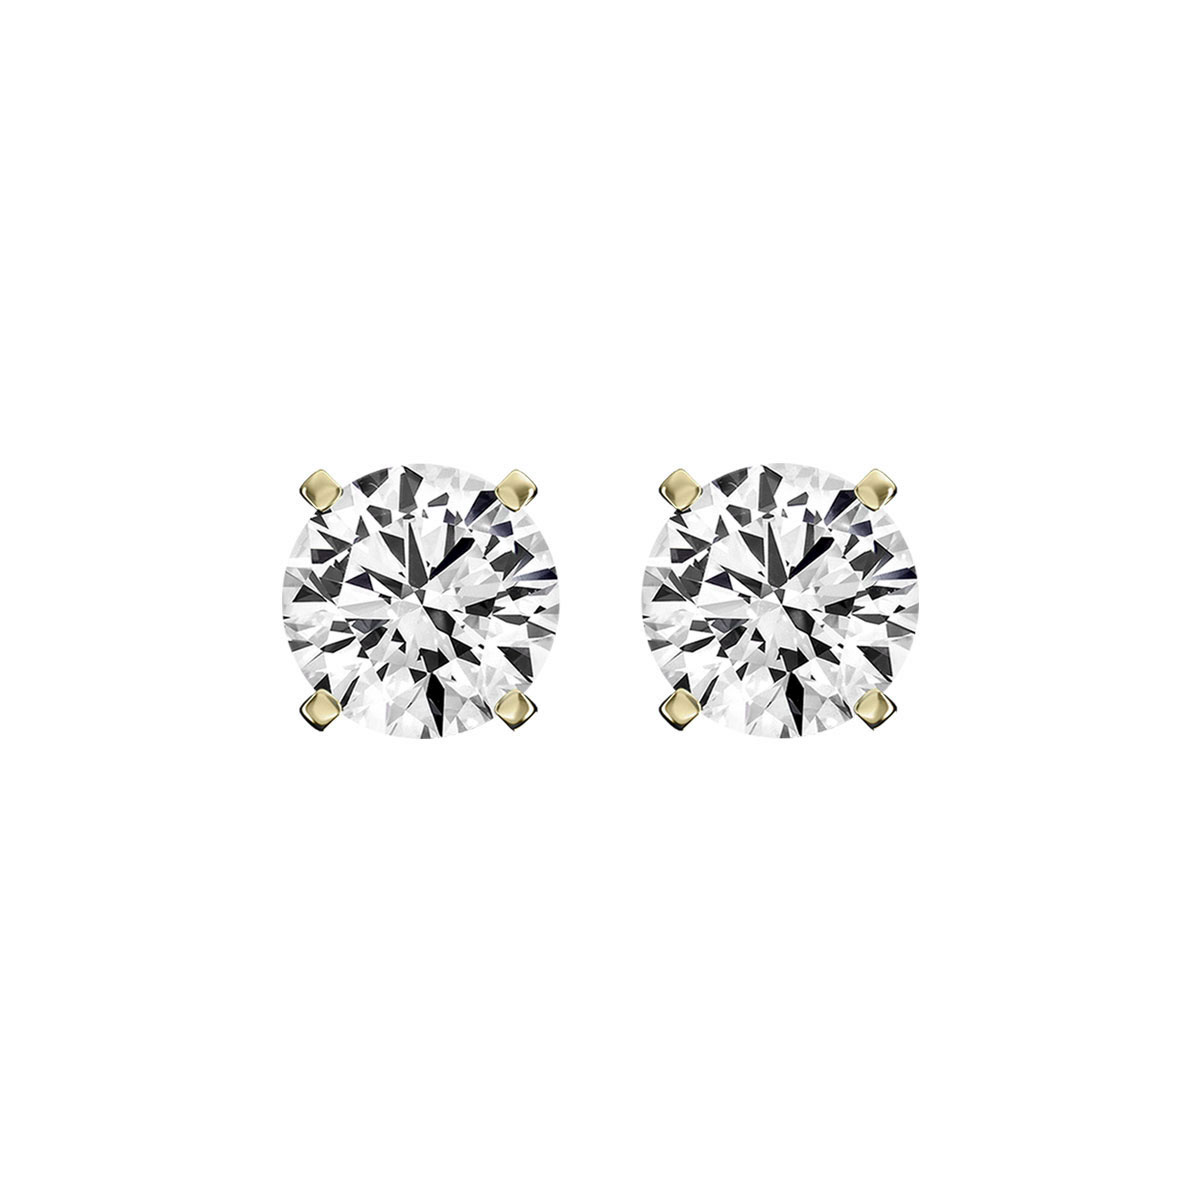 14K Yellow Gold Diamond Stud Earrings ( 1/5 ct. tw)